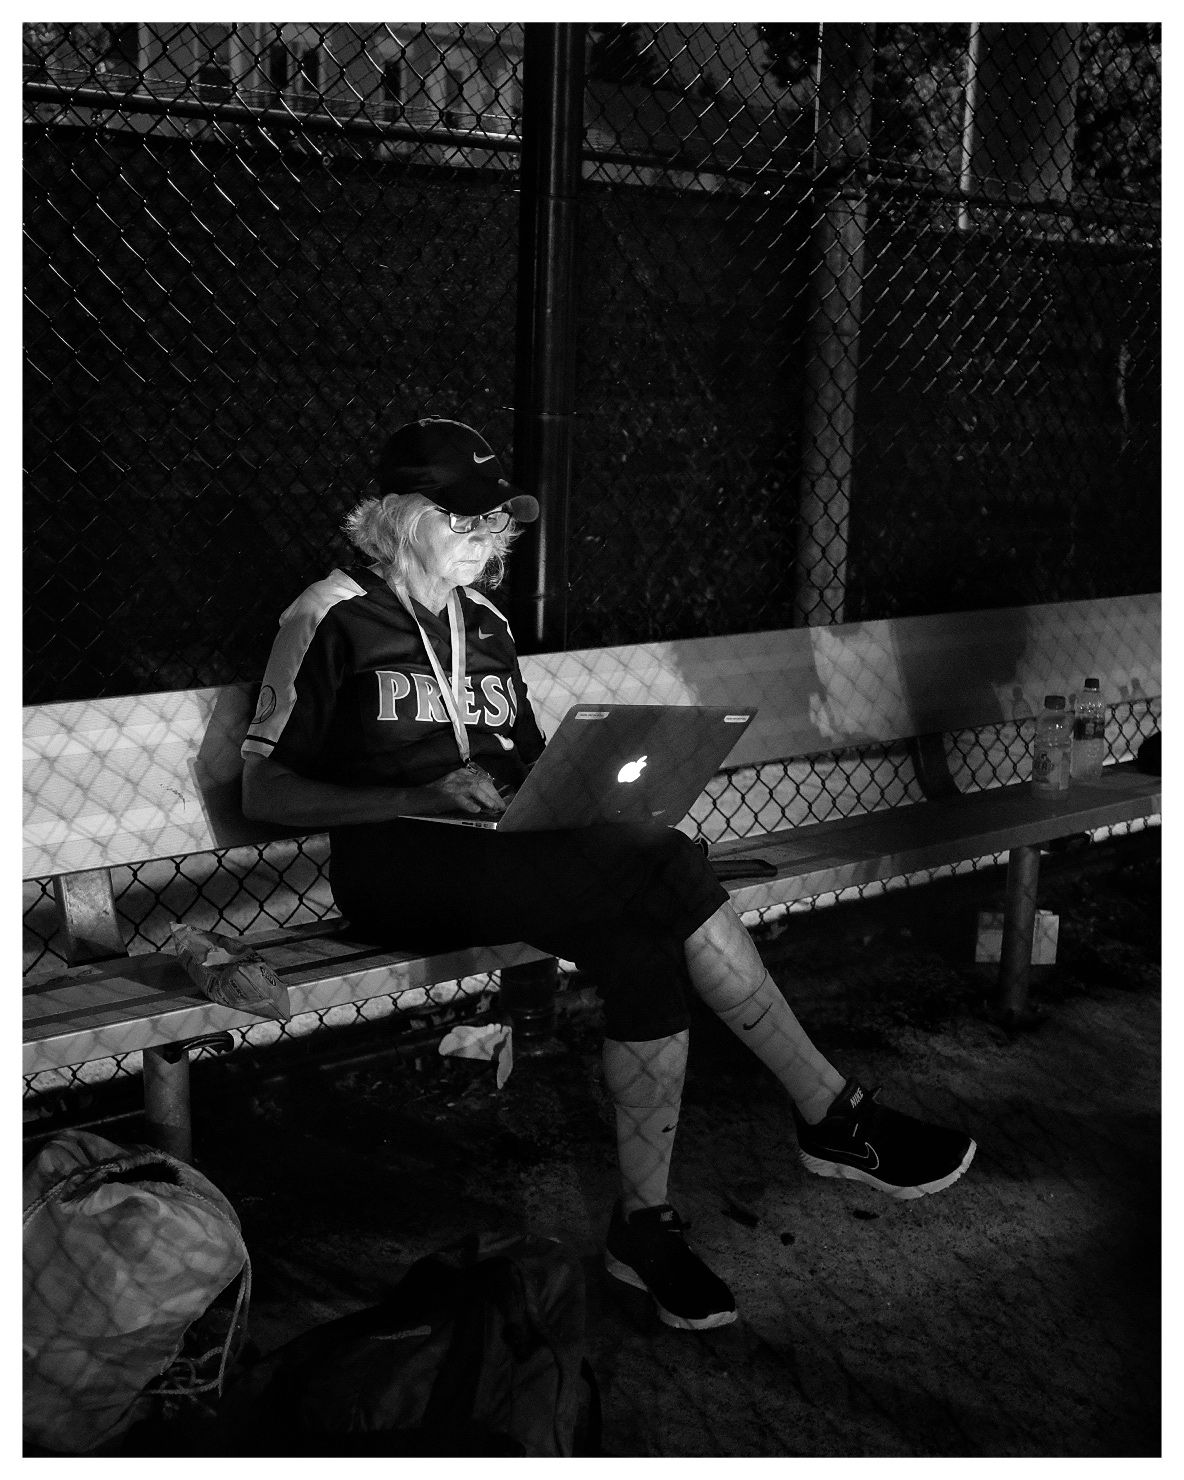 Lynn Sweet writes part of her column in the dugout